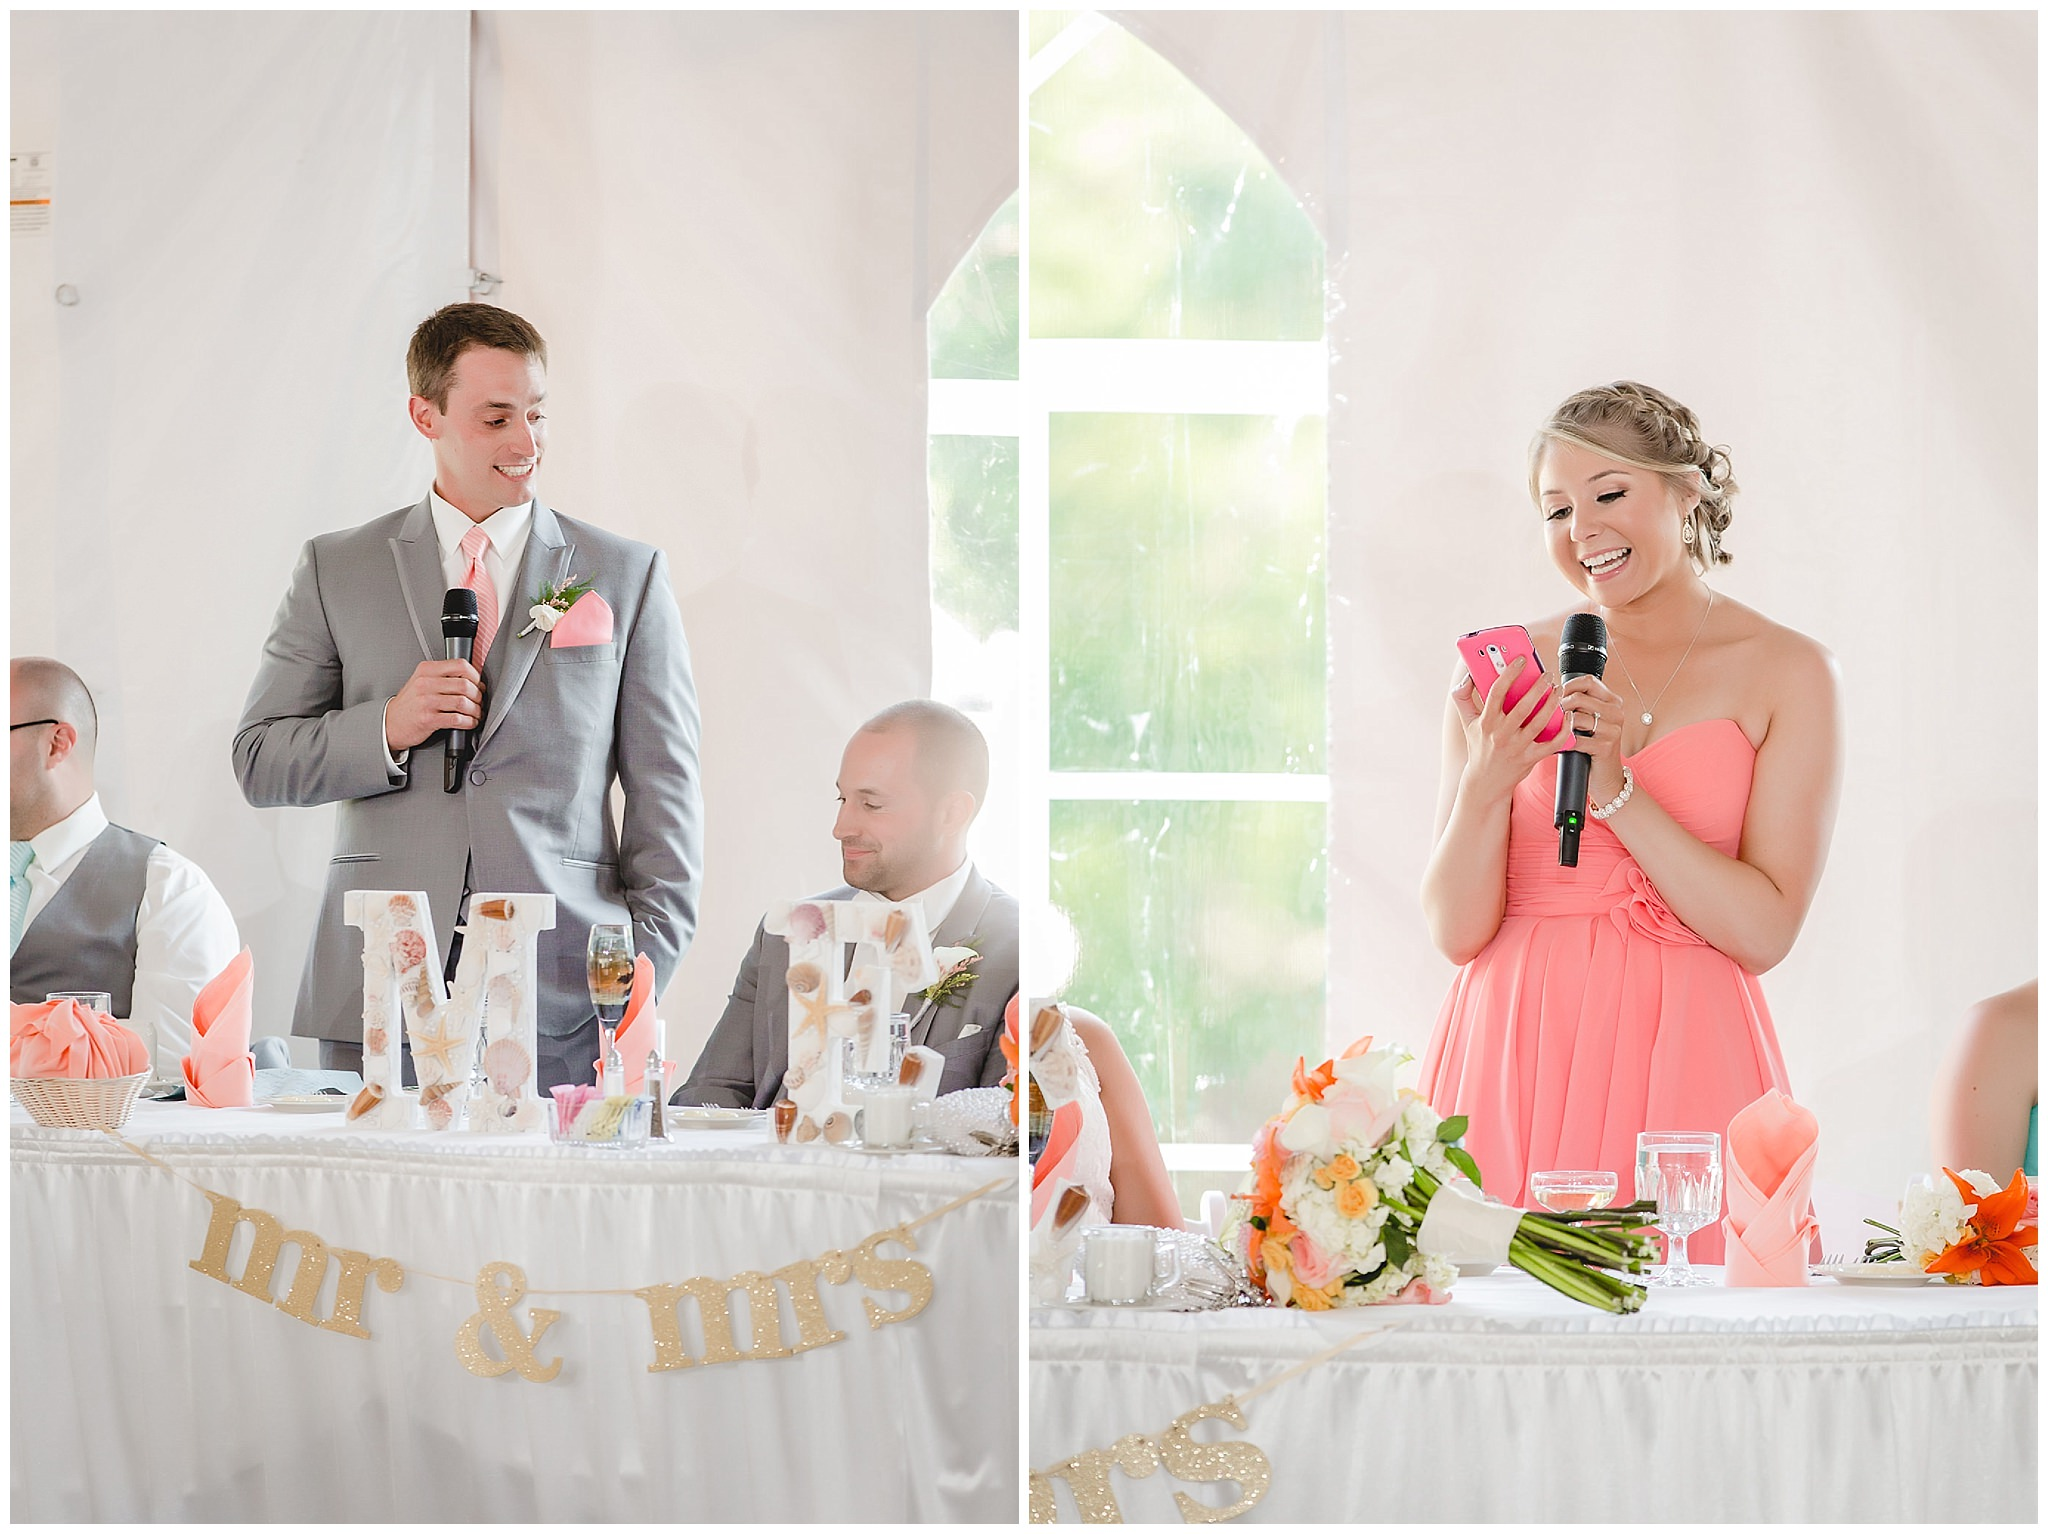 Best man and maid of honor toast the bride and groom